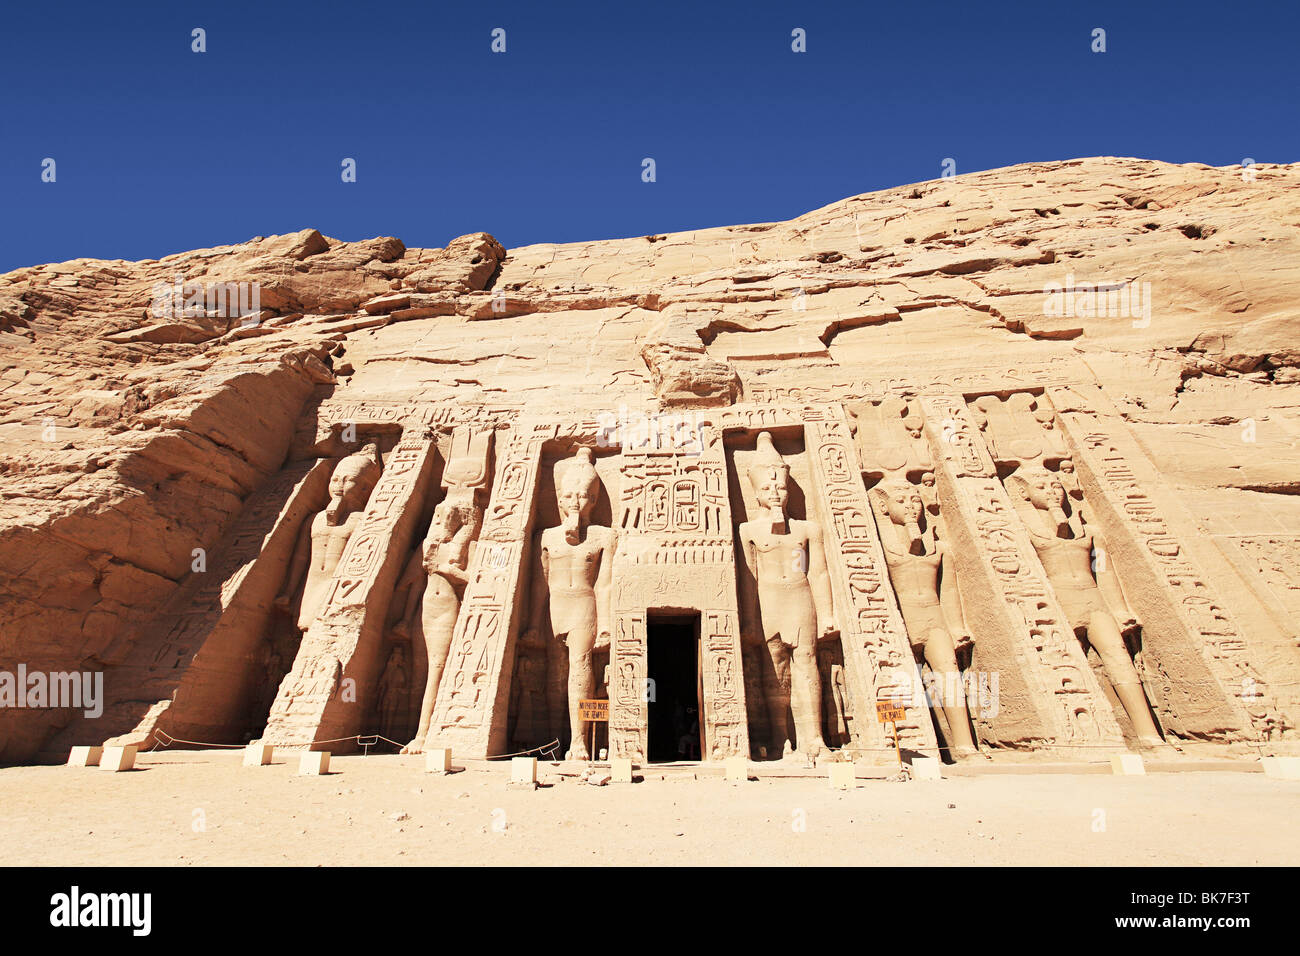 Abu simbel Egypte Photo Stock